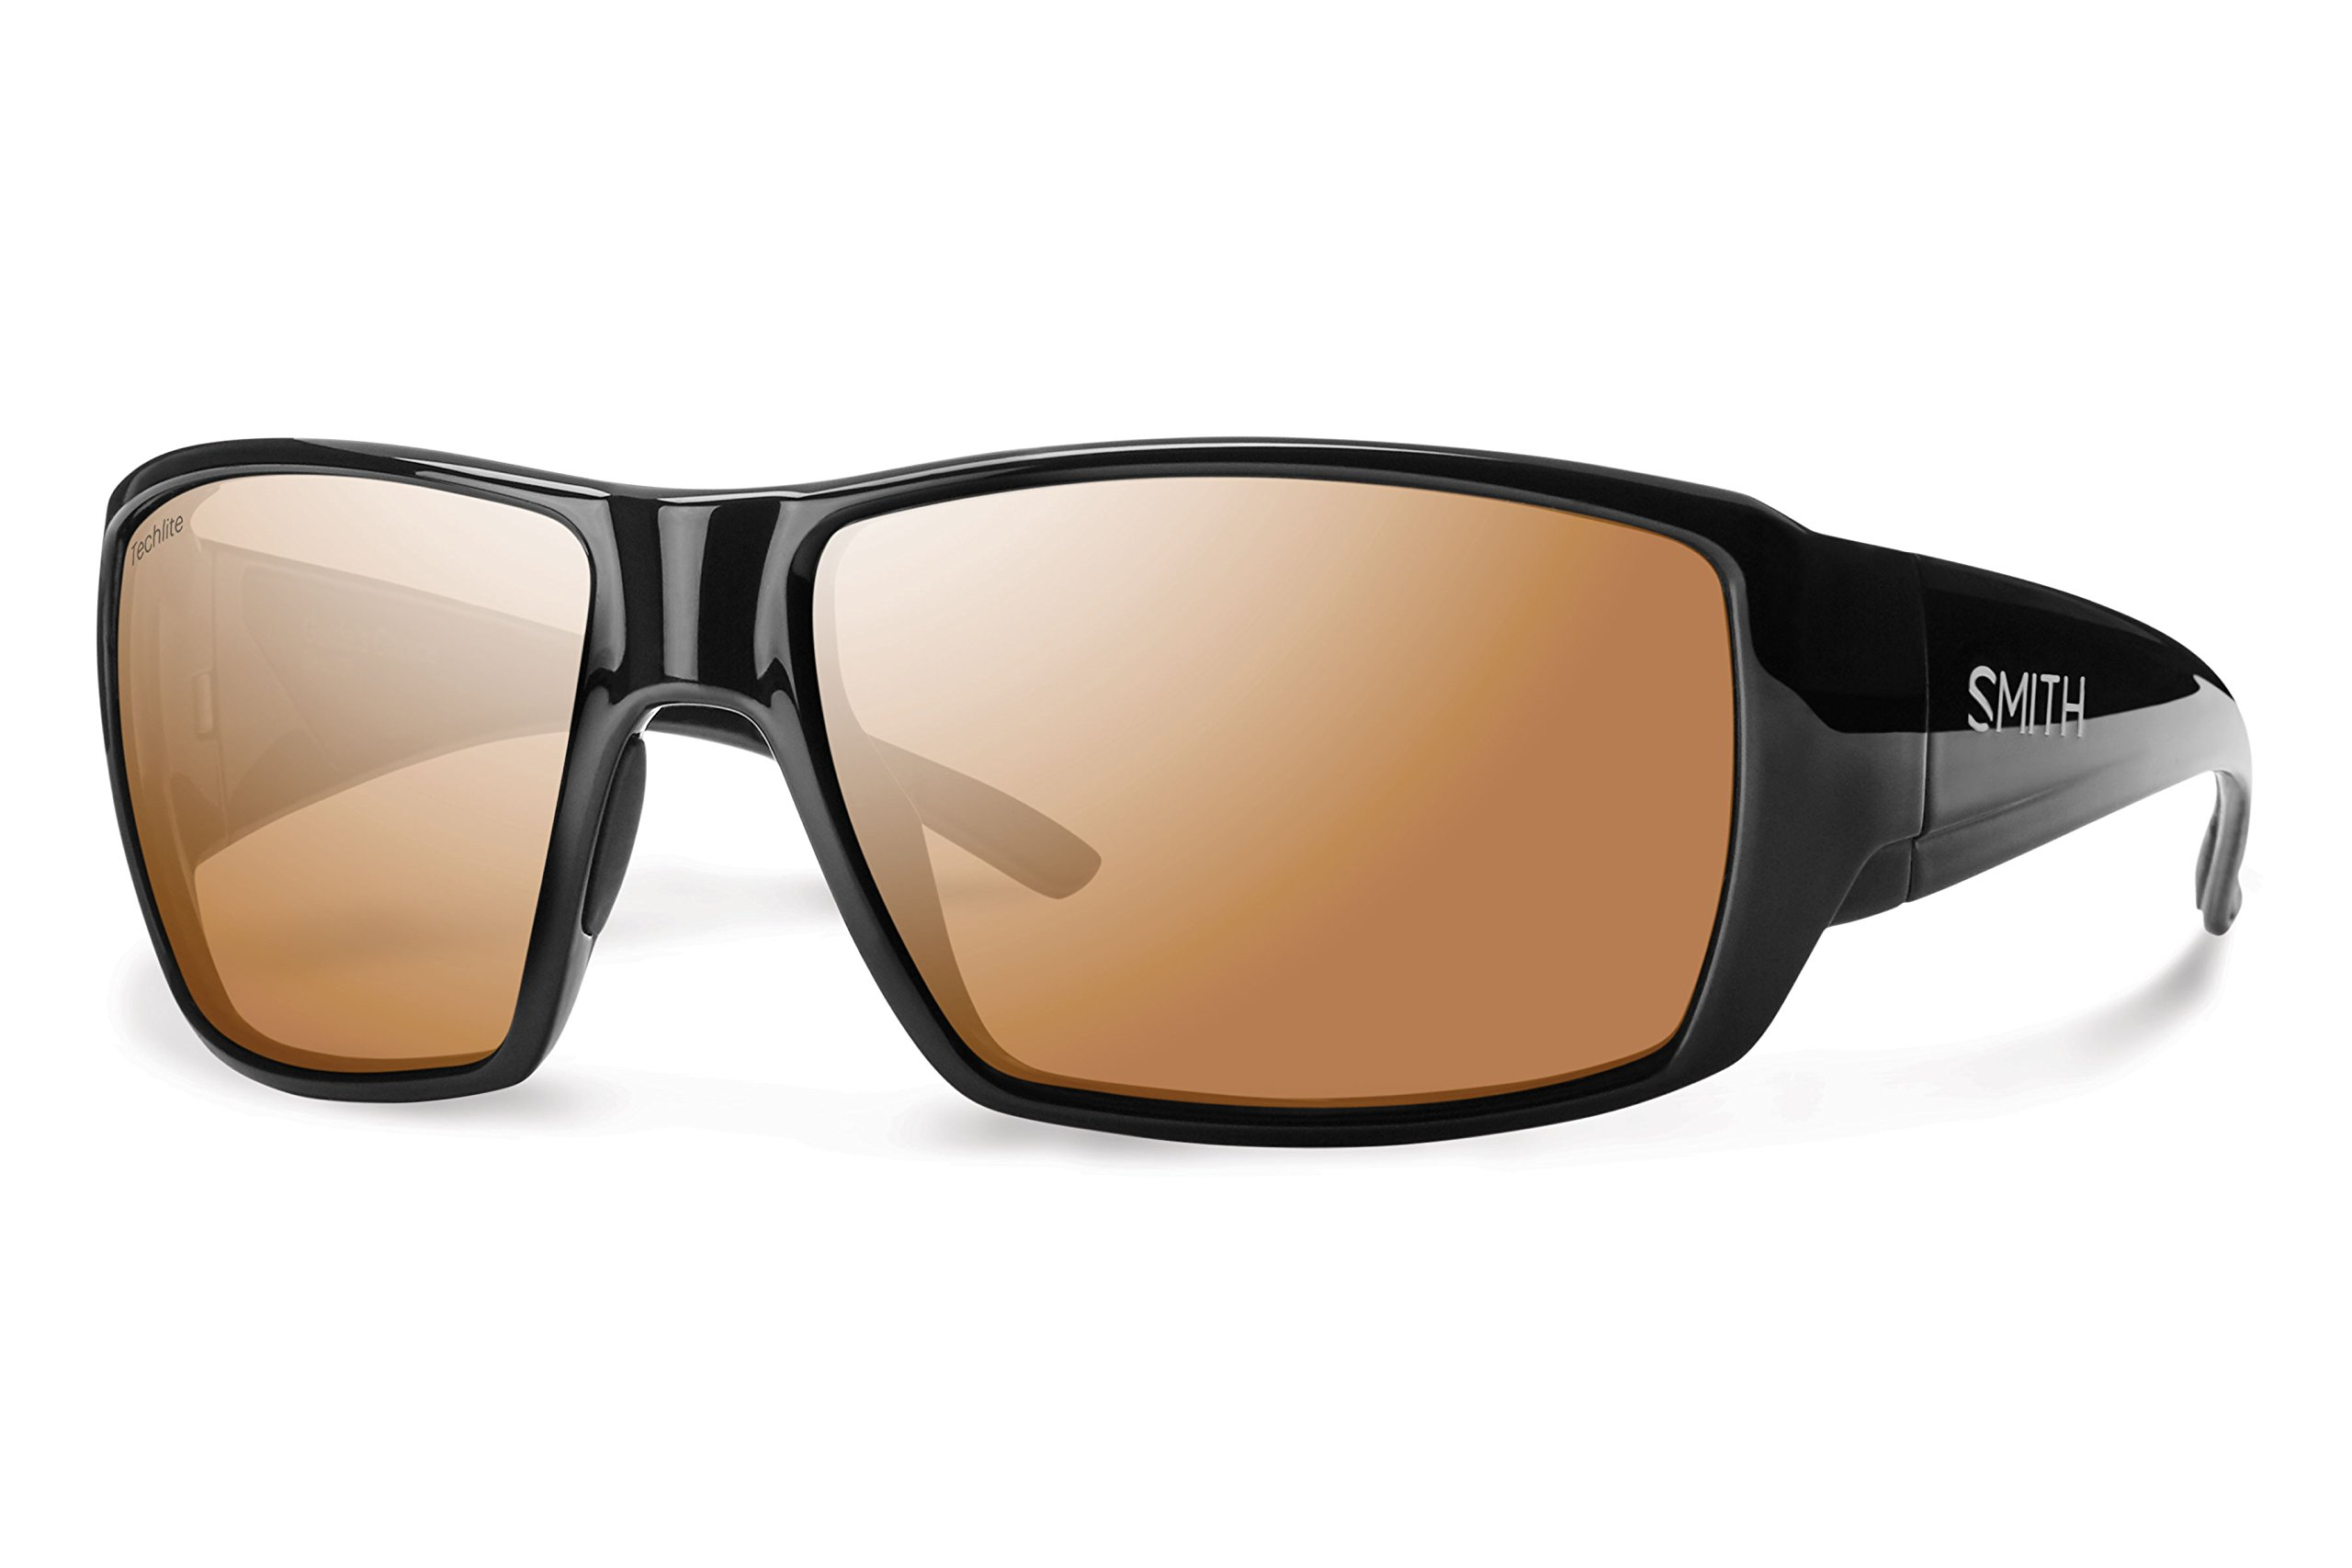 Smith Guides Choice Sunglasses by Smith Optics